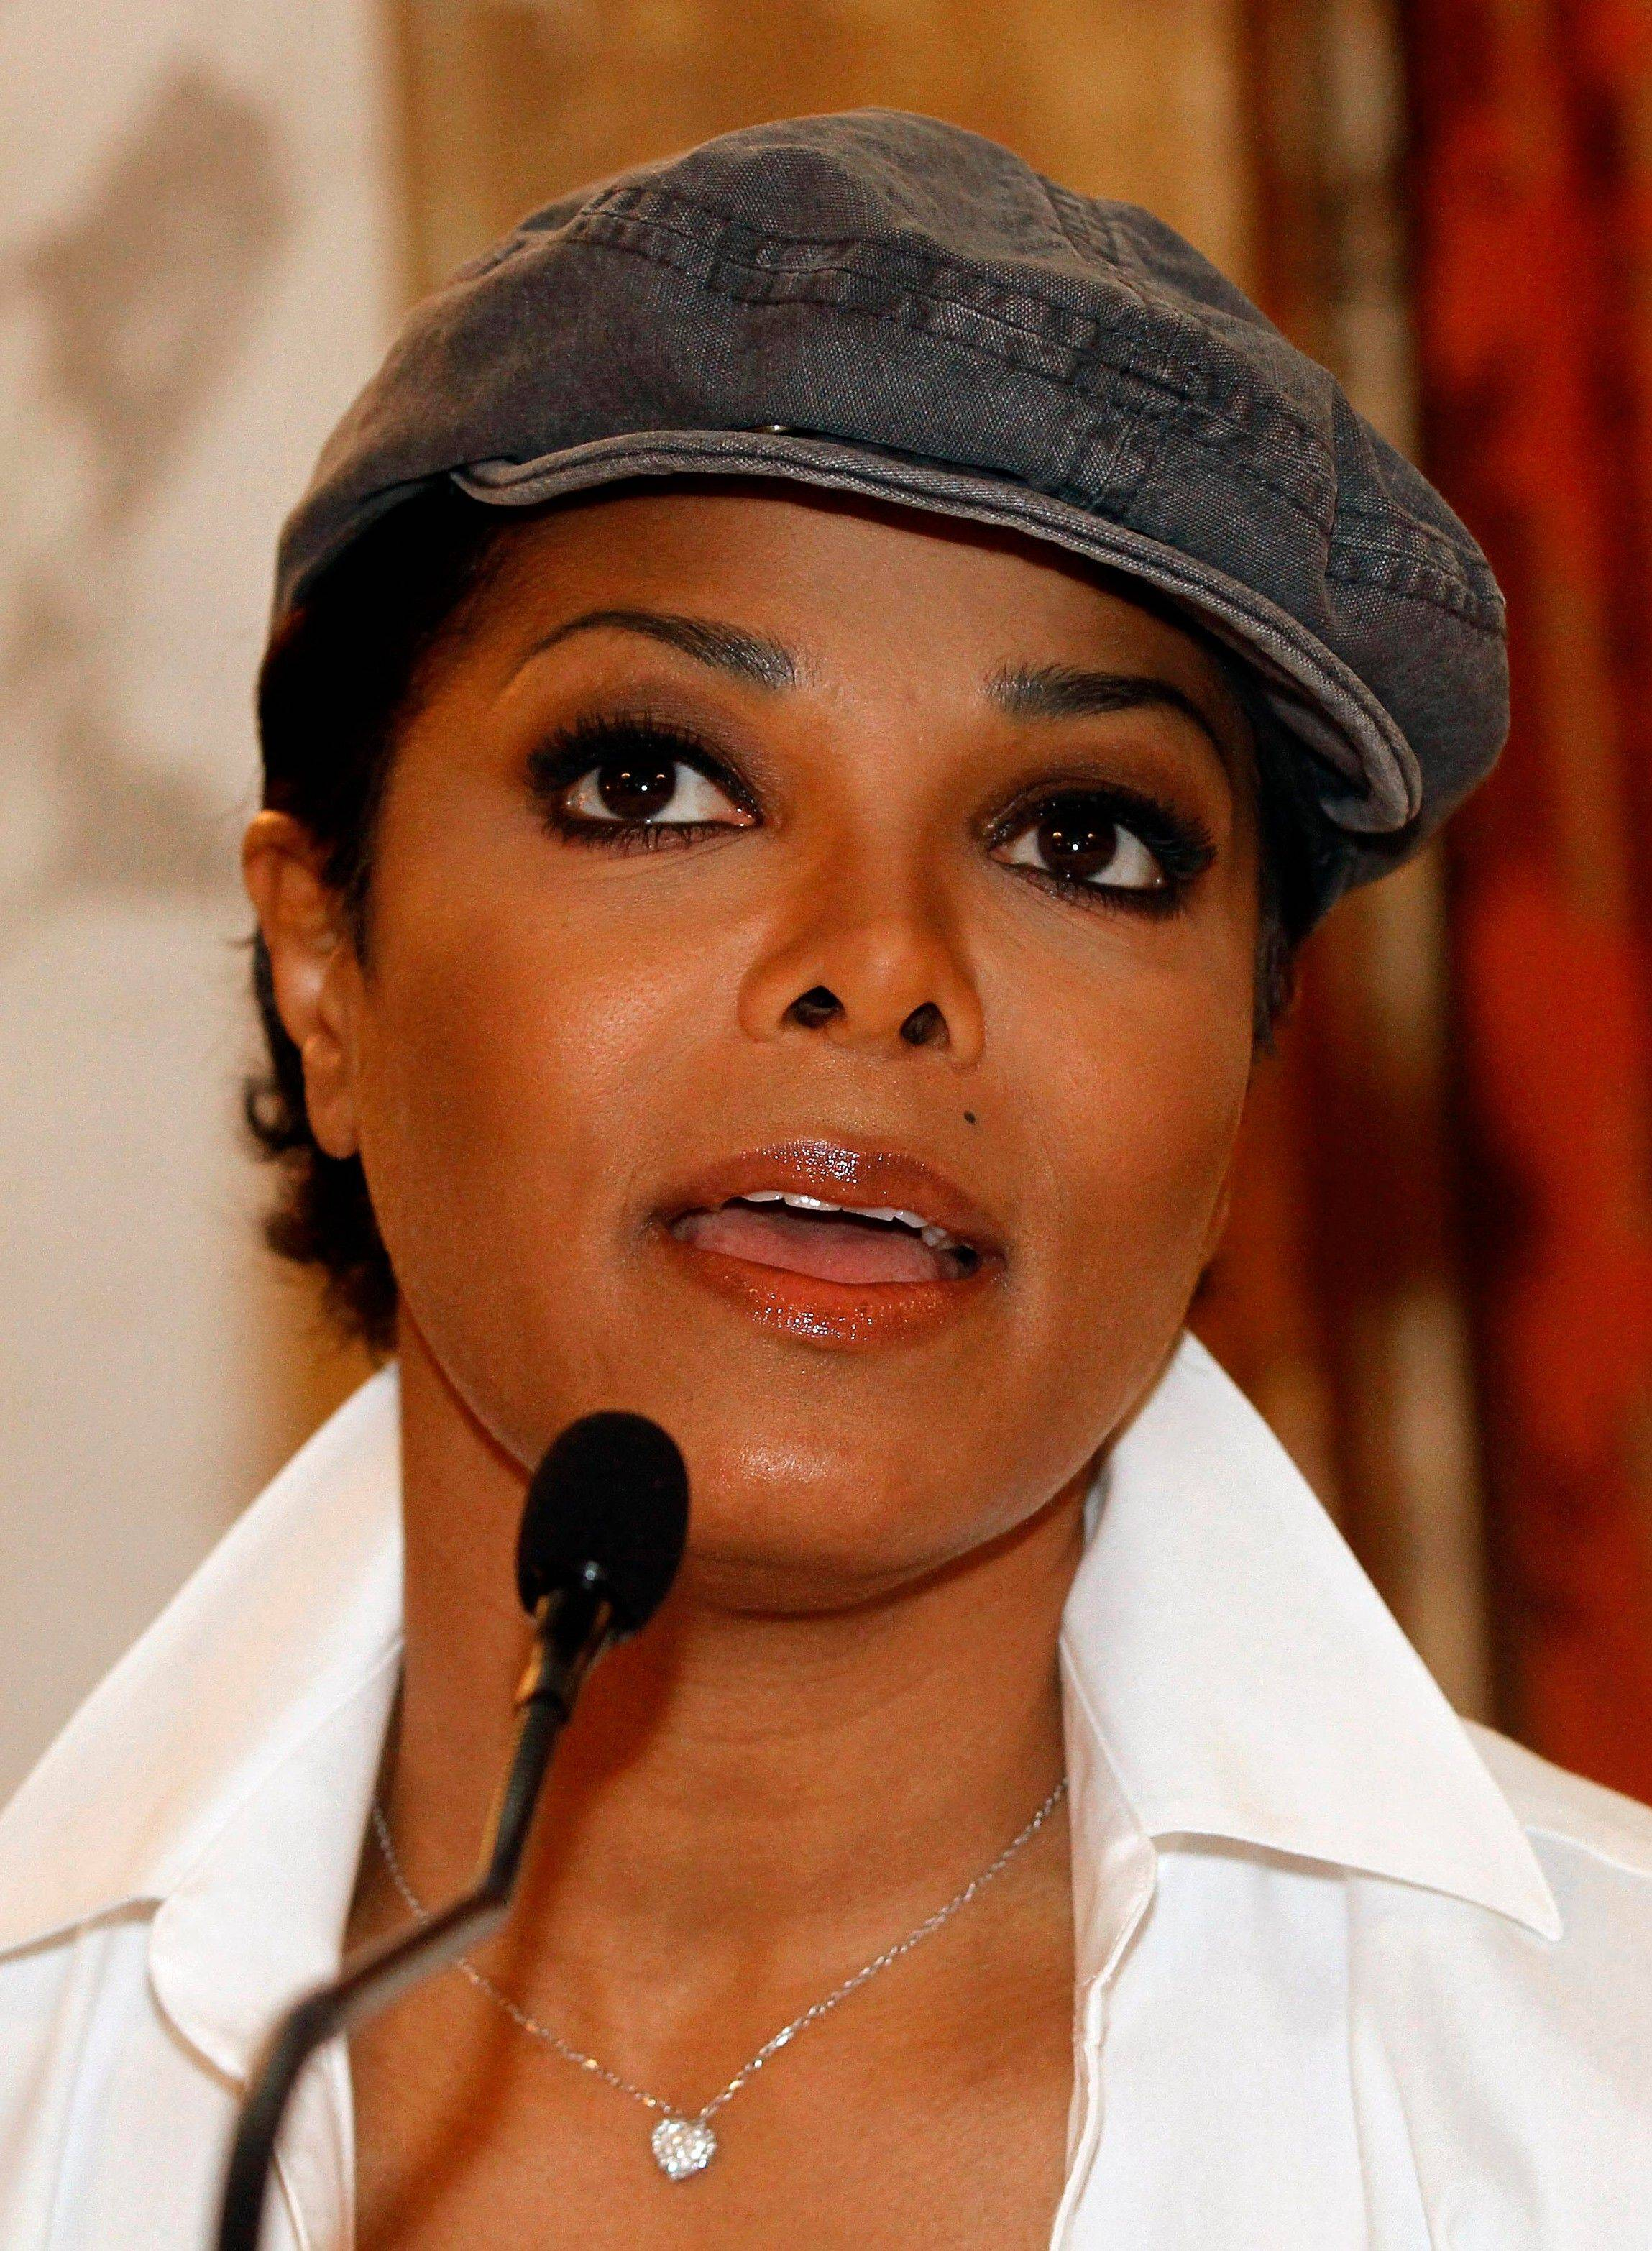 On Monday, Janet Jackson said in a statement to The Associated Press that she would not attend a planned tribute concert to Michael because it coincides with the trial of a doctor charged in her brother's death.